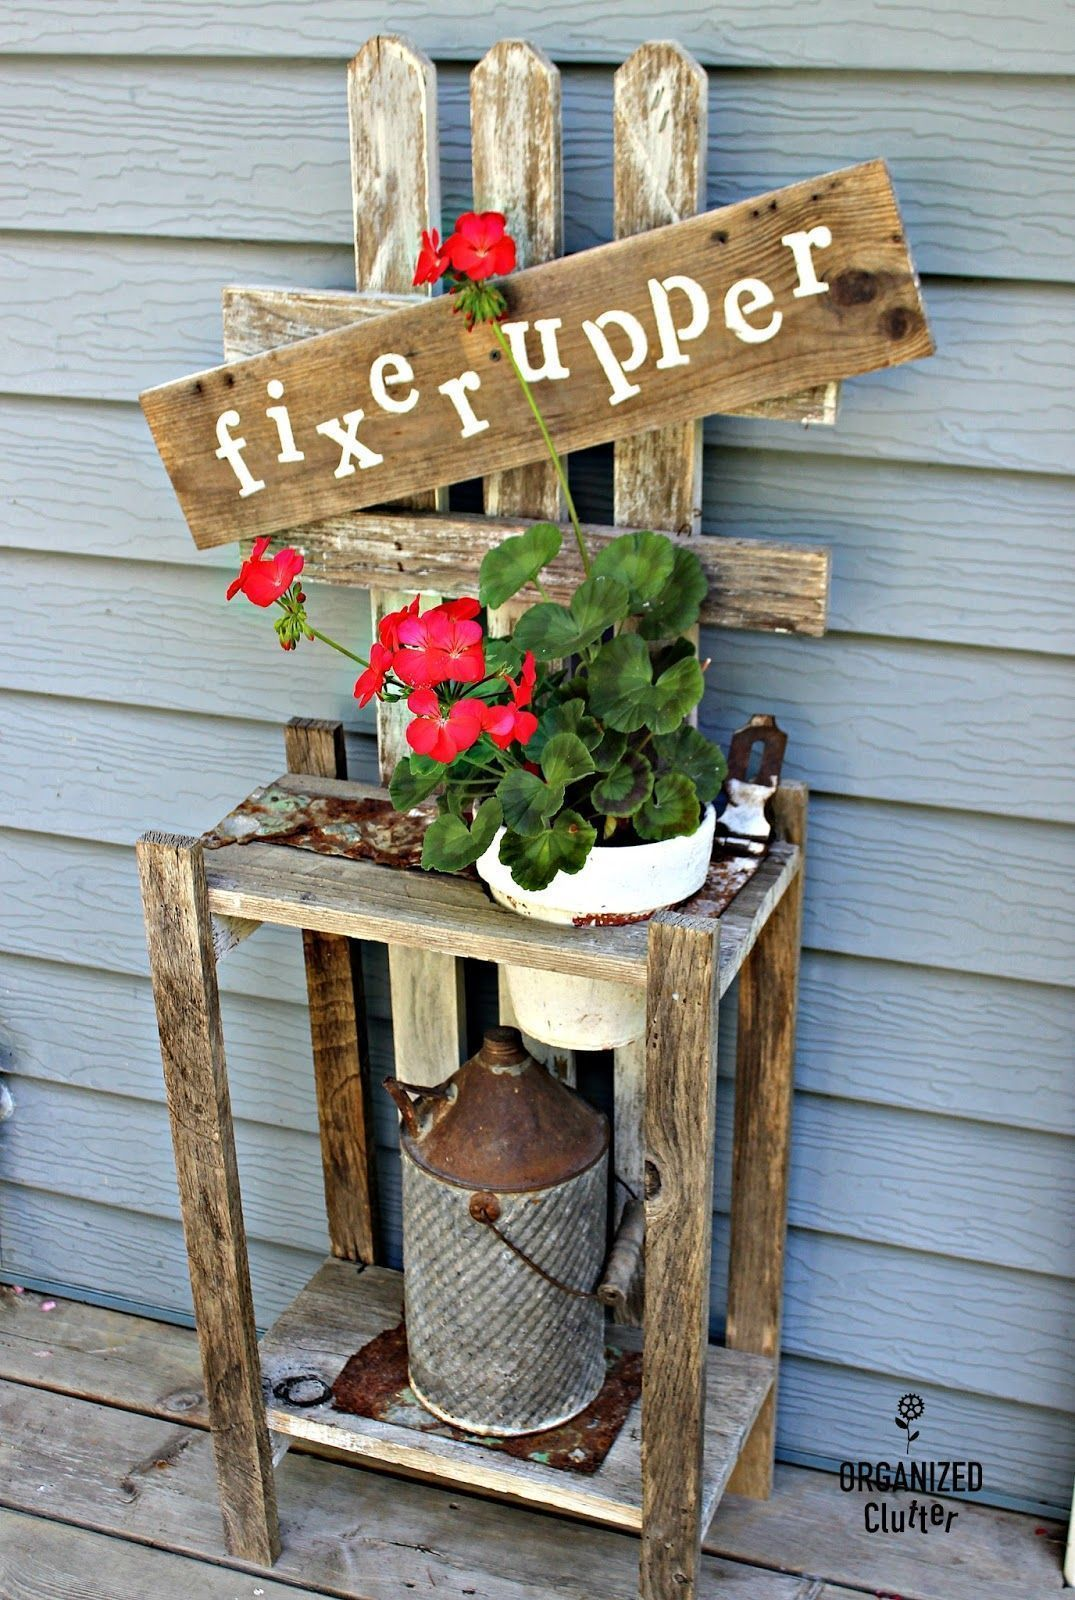 Garden decor out of junk  Click on links Junk Garden Rummage Sale Fixer Upper Garage Sale